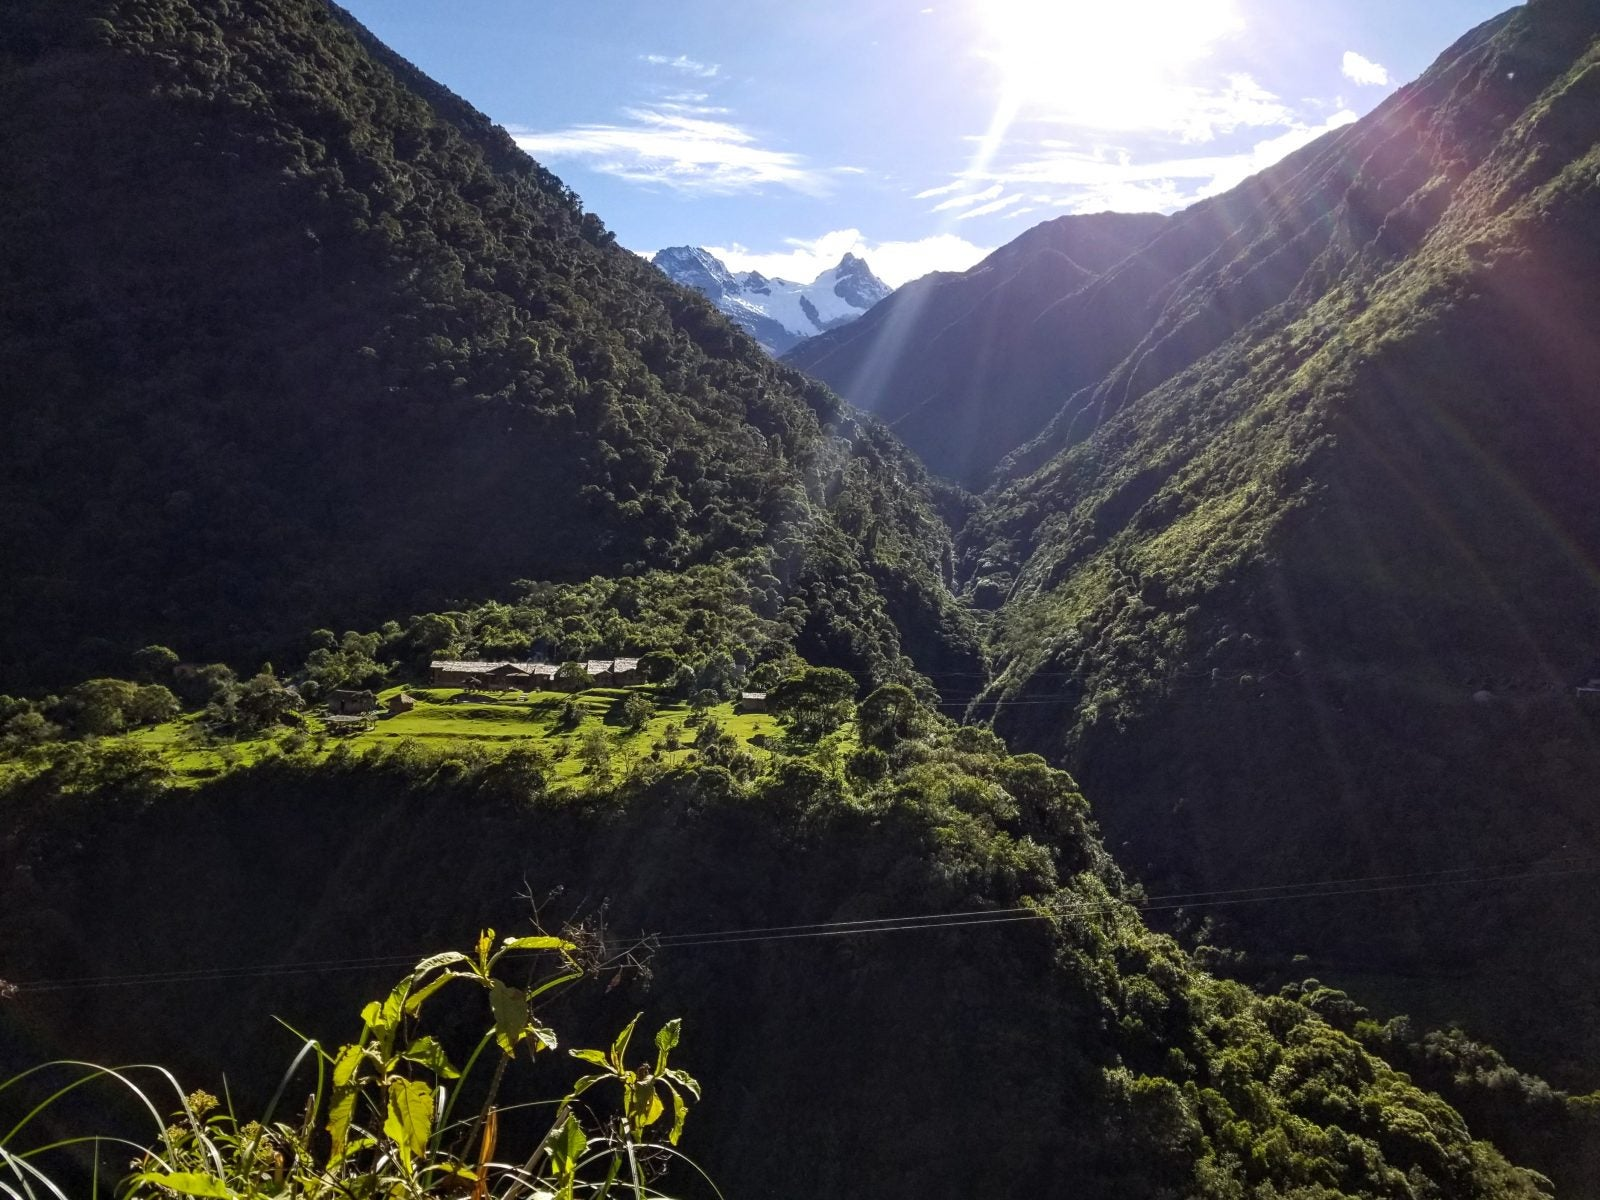 Day 2: A Miserable 4-Day Trek to Machu Picchu – And I Can't Wait to Do It Again!